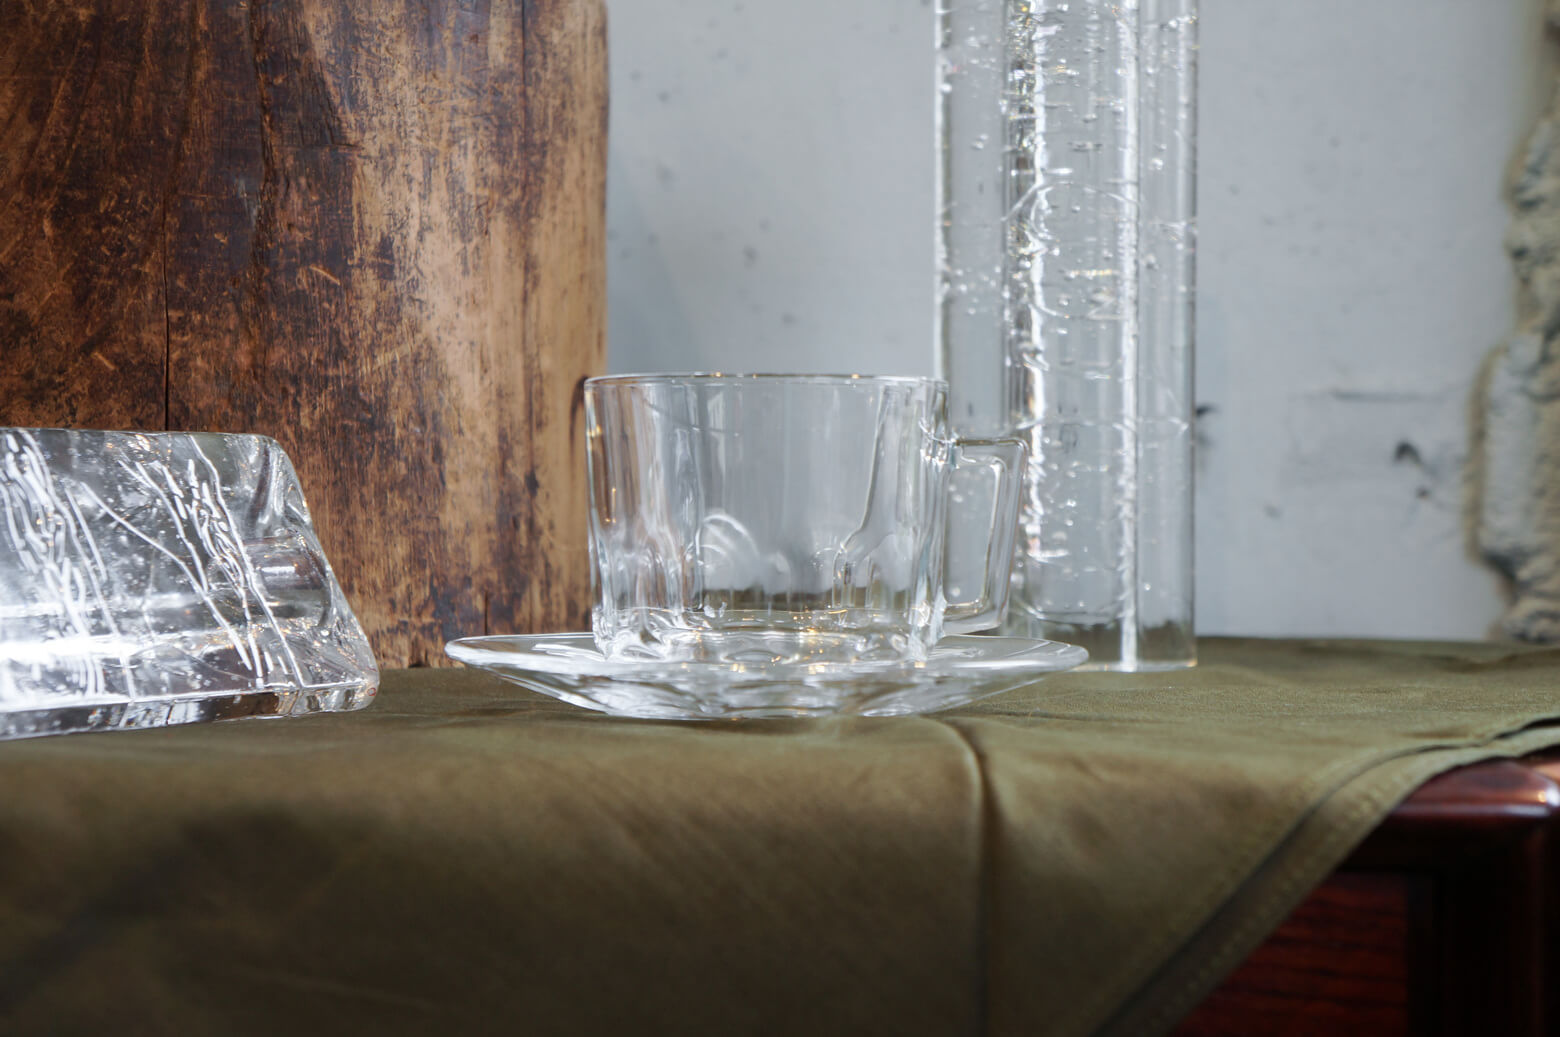 arcoroc Cup and Saucer Glass Ware Made In France/アルコロック カップ&ソーサー ガラス フランス製 食器 レトロ